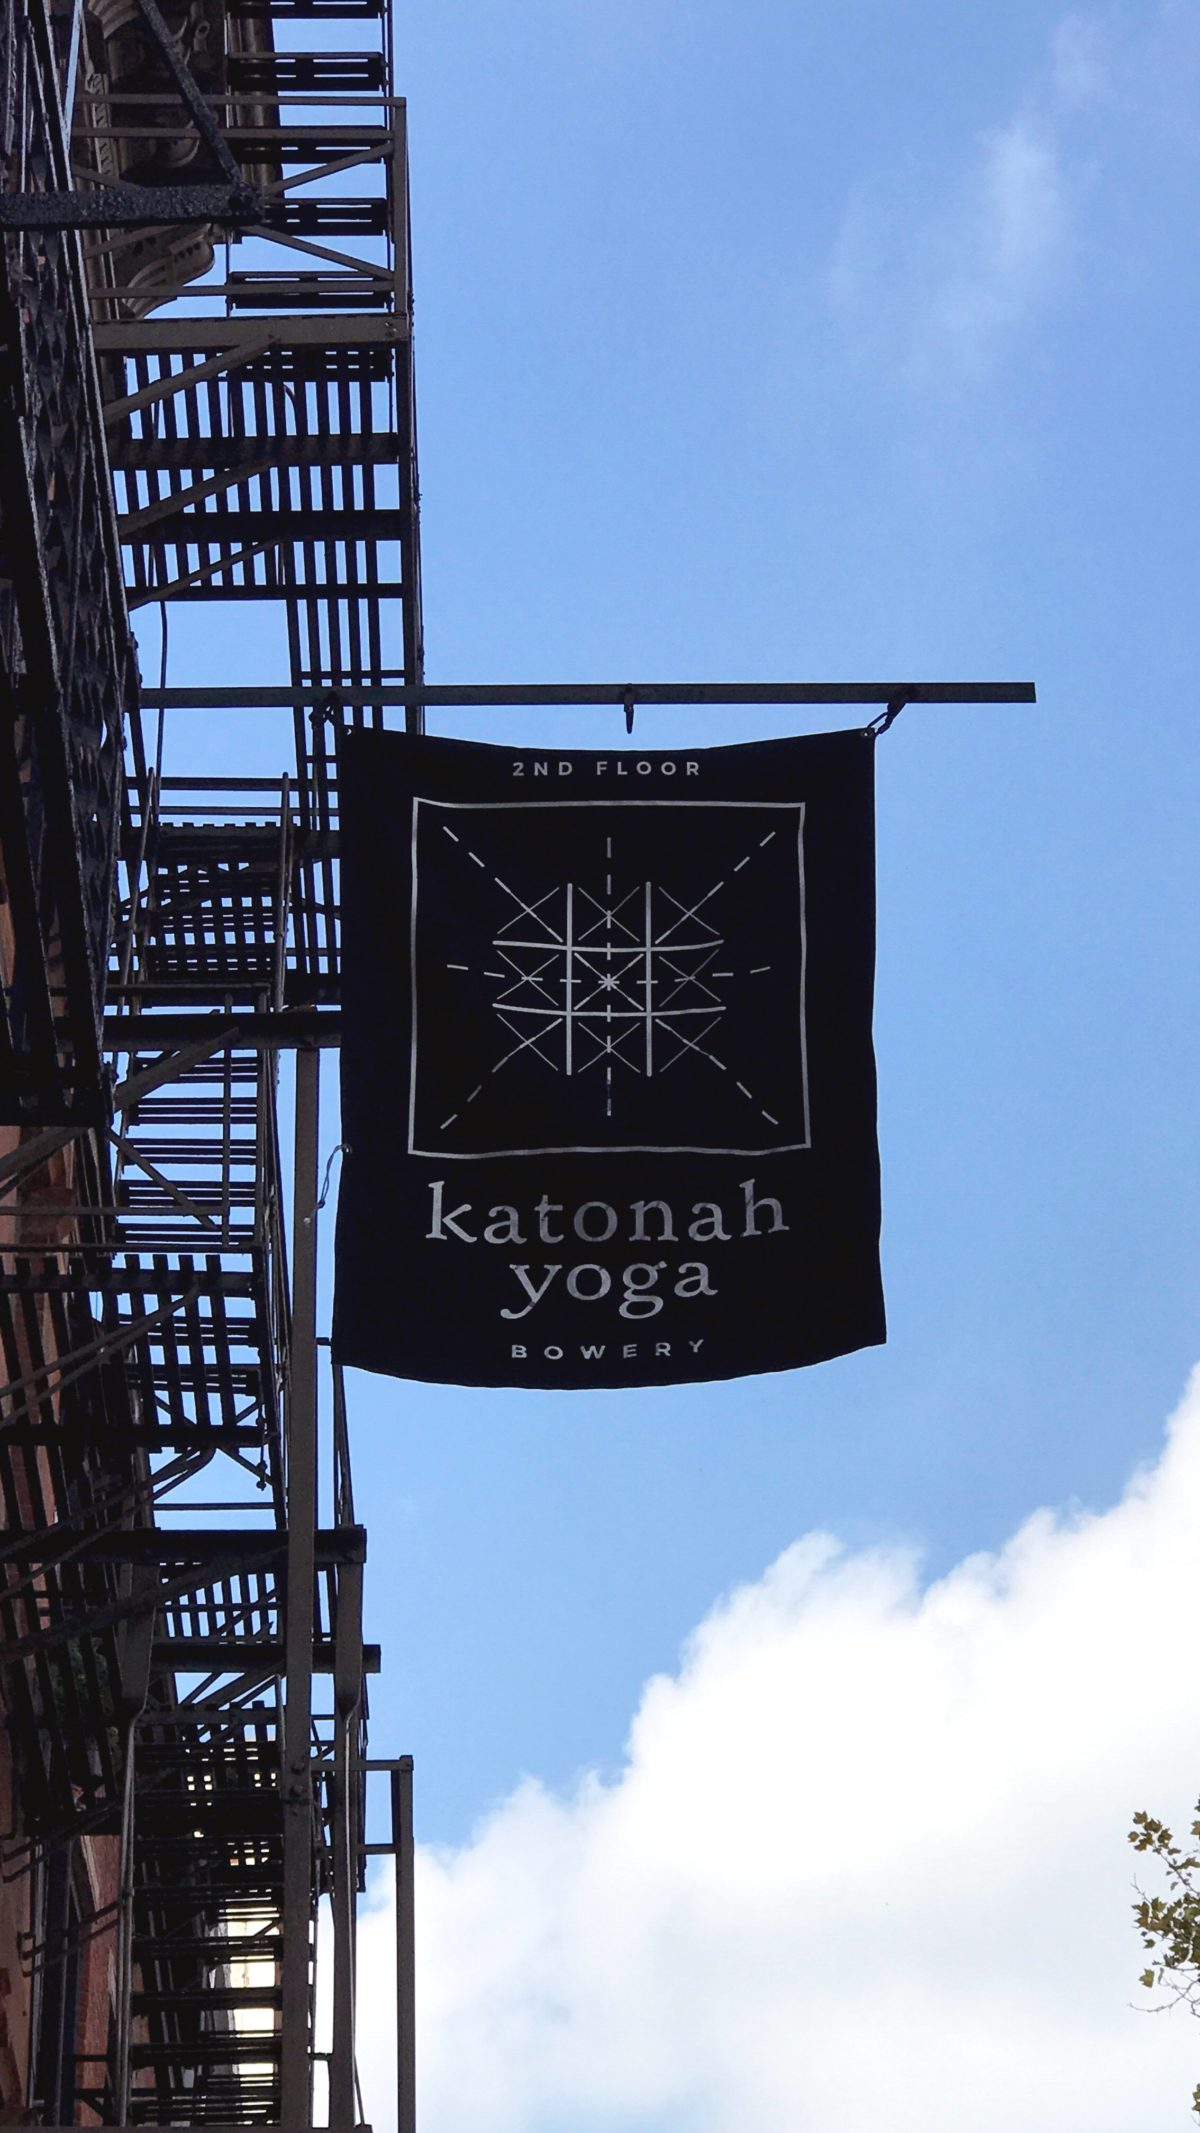 kantonah-yoga-new-york